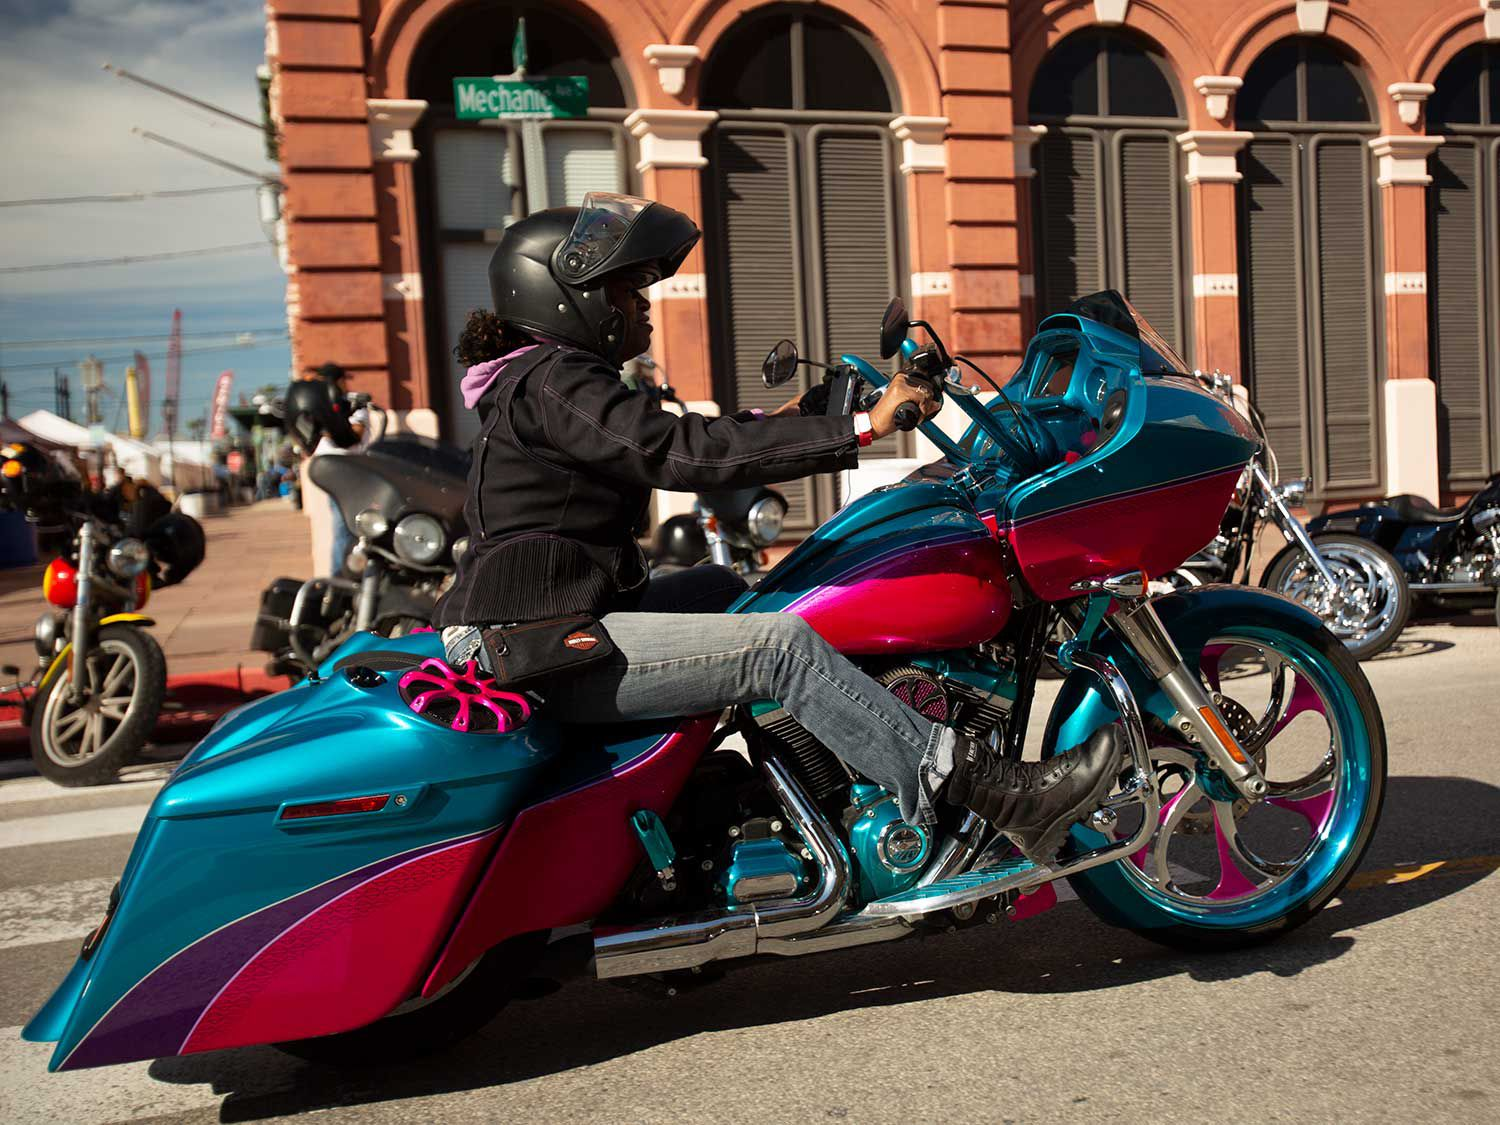 Matching paint, wheels, and engine covers—when these baggers go for it, they go for it!